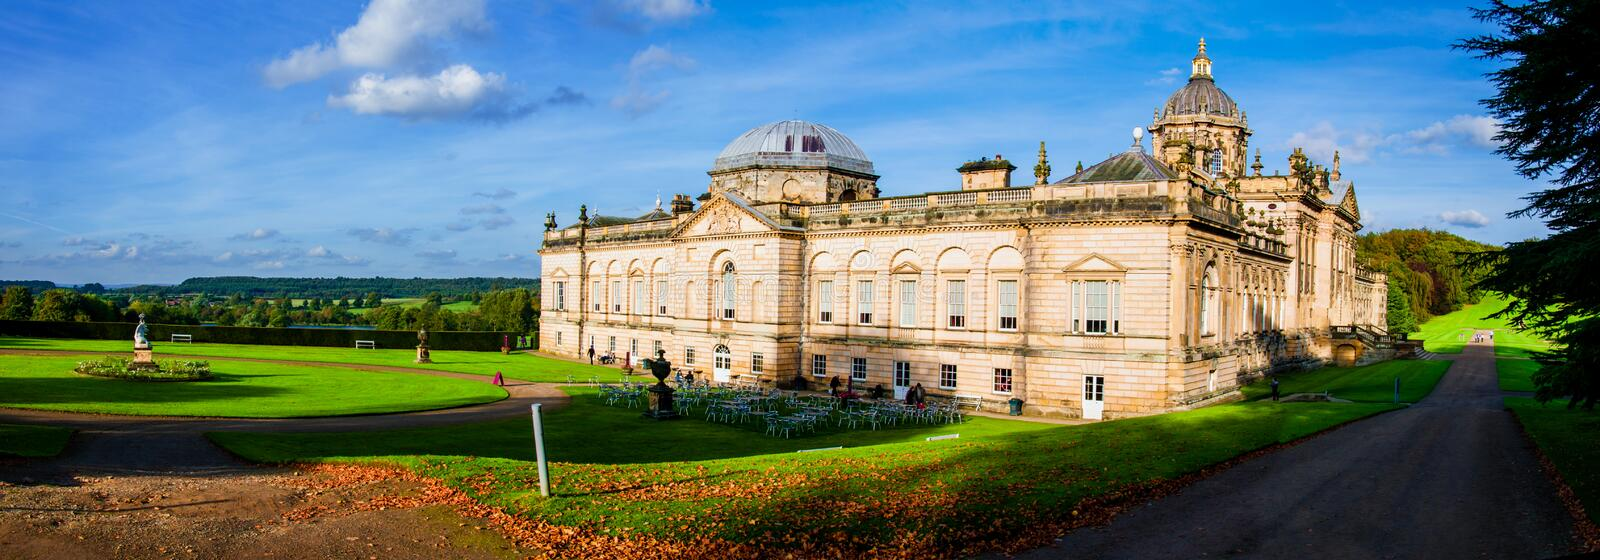 Castle Howard, North Yorkshire, UK. United Kingdom, North Yorkshire - October 5, 2014: Castle Howard is a famous stately home for Brideshead remake being filmed stock photos